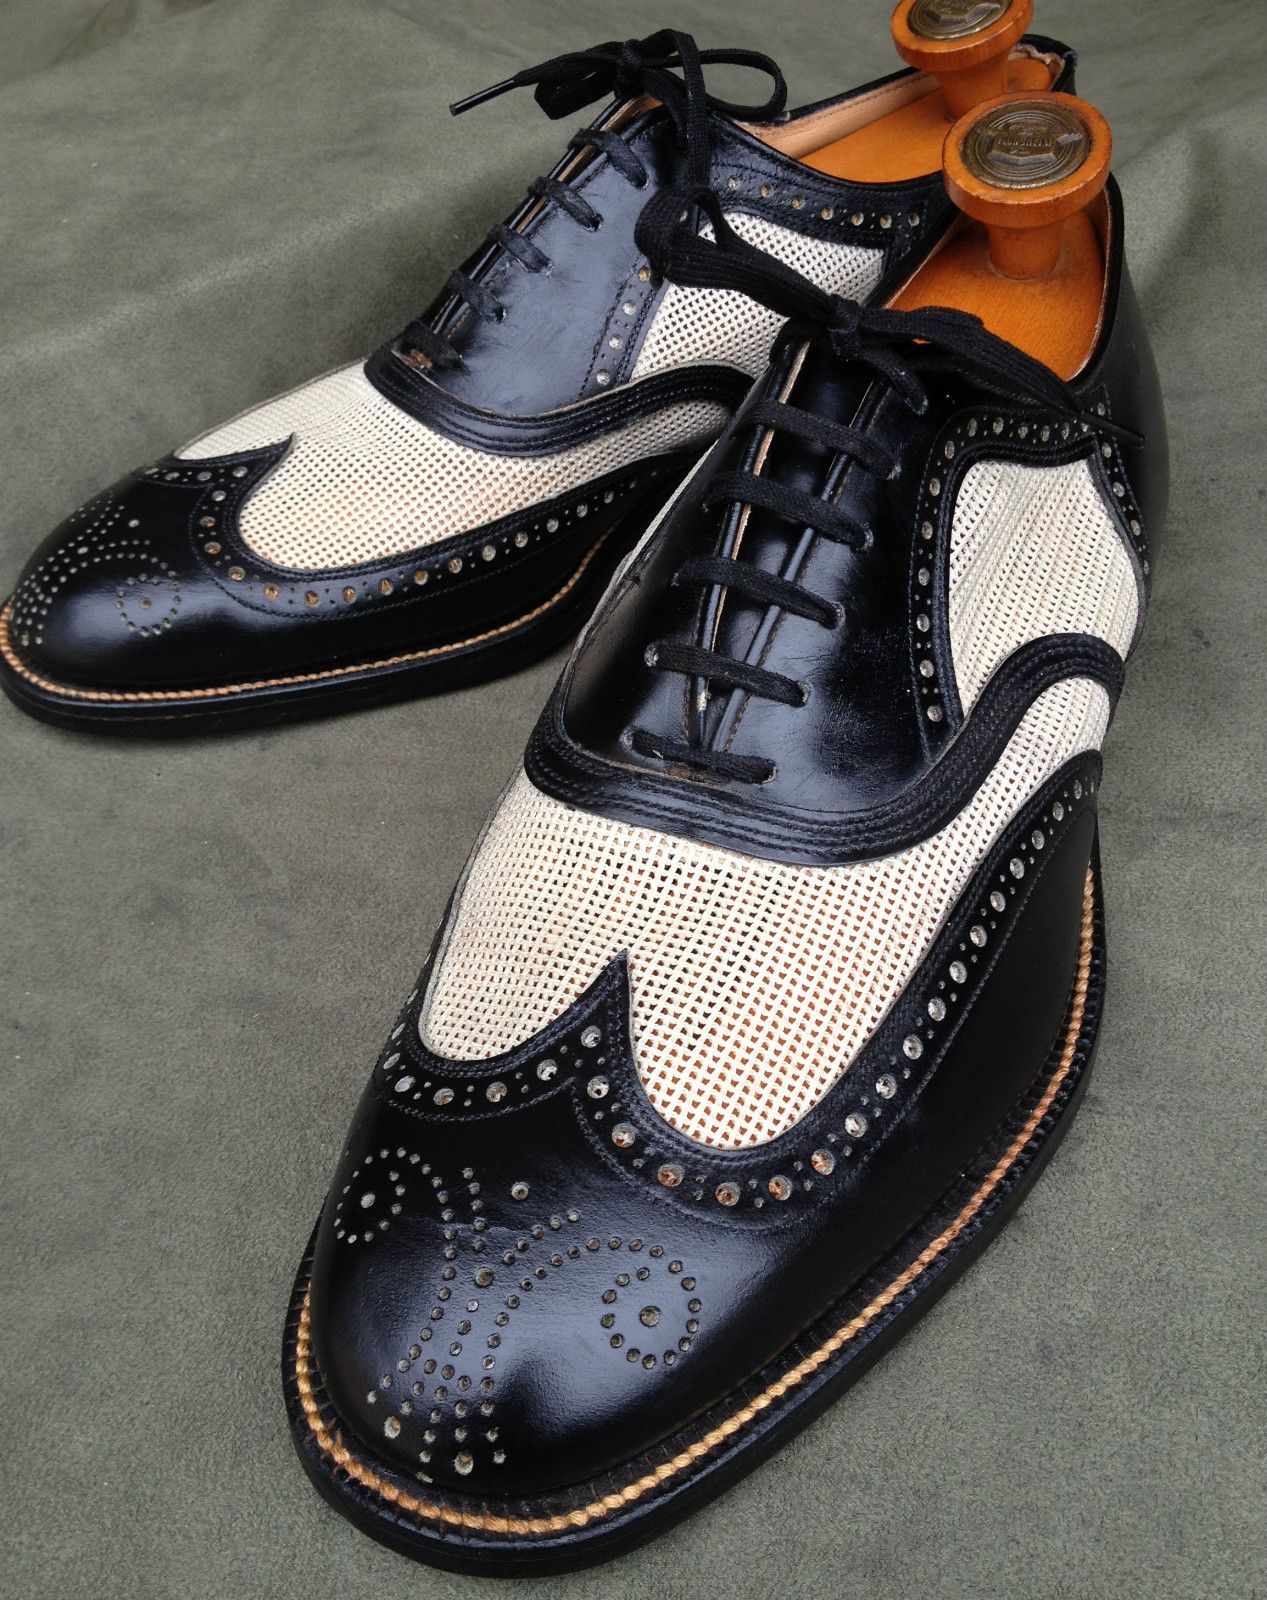 Frank New Spring Summer Men Oxfords Full Grain Leather Brogue Shoes Wing Tips Pointed Toe Formal Dress Man Shoes Shoes